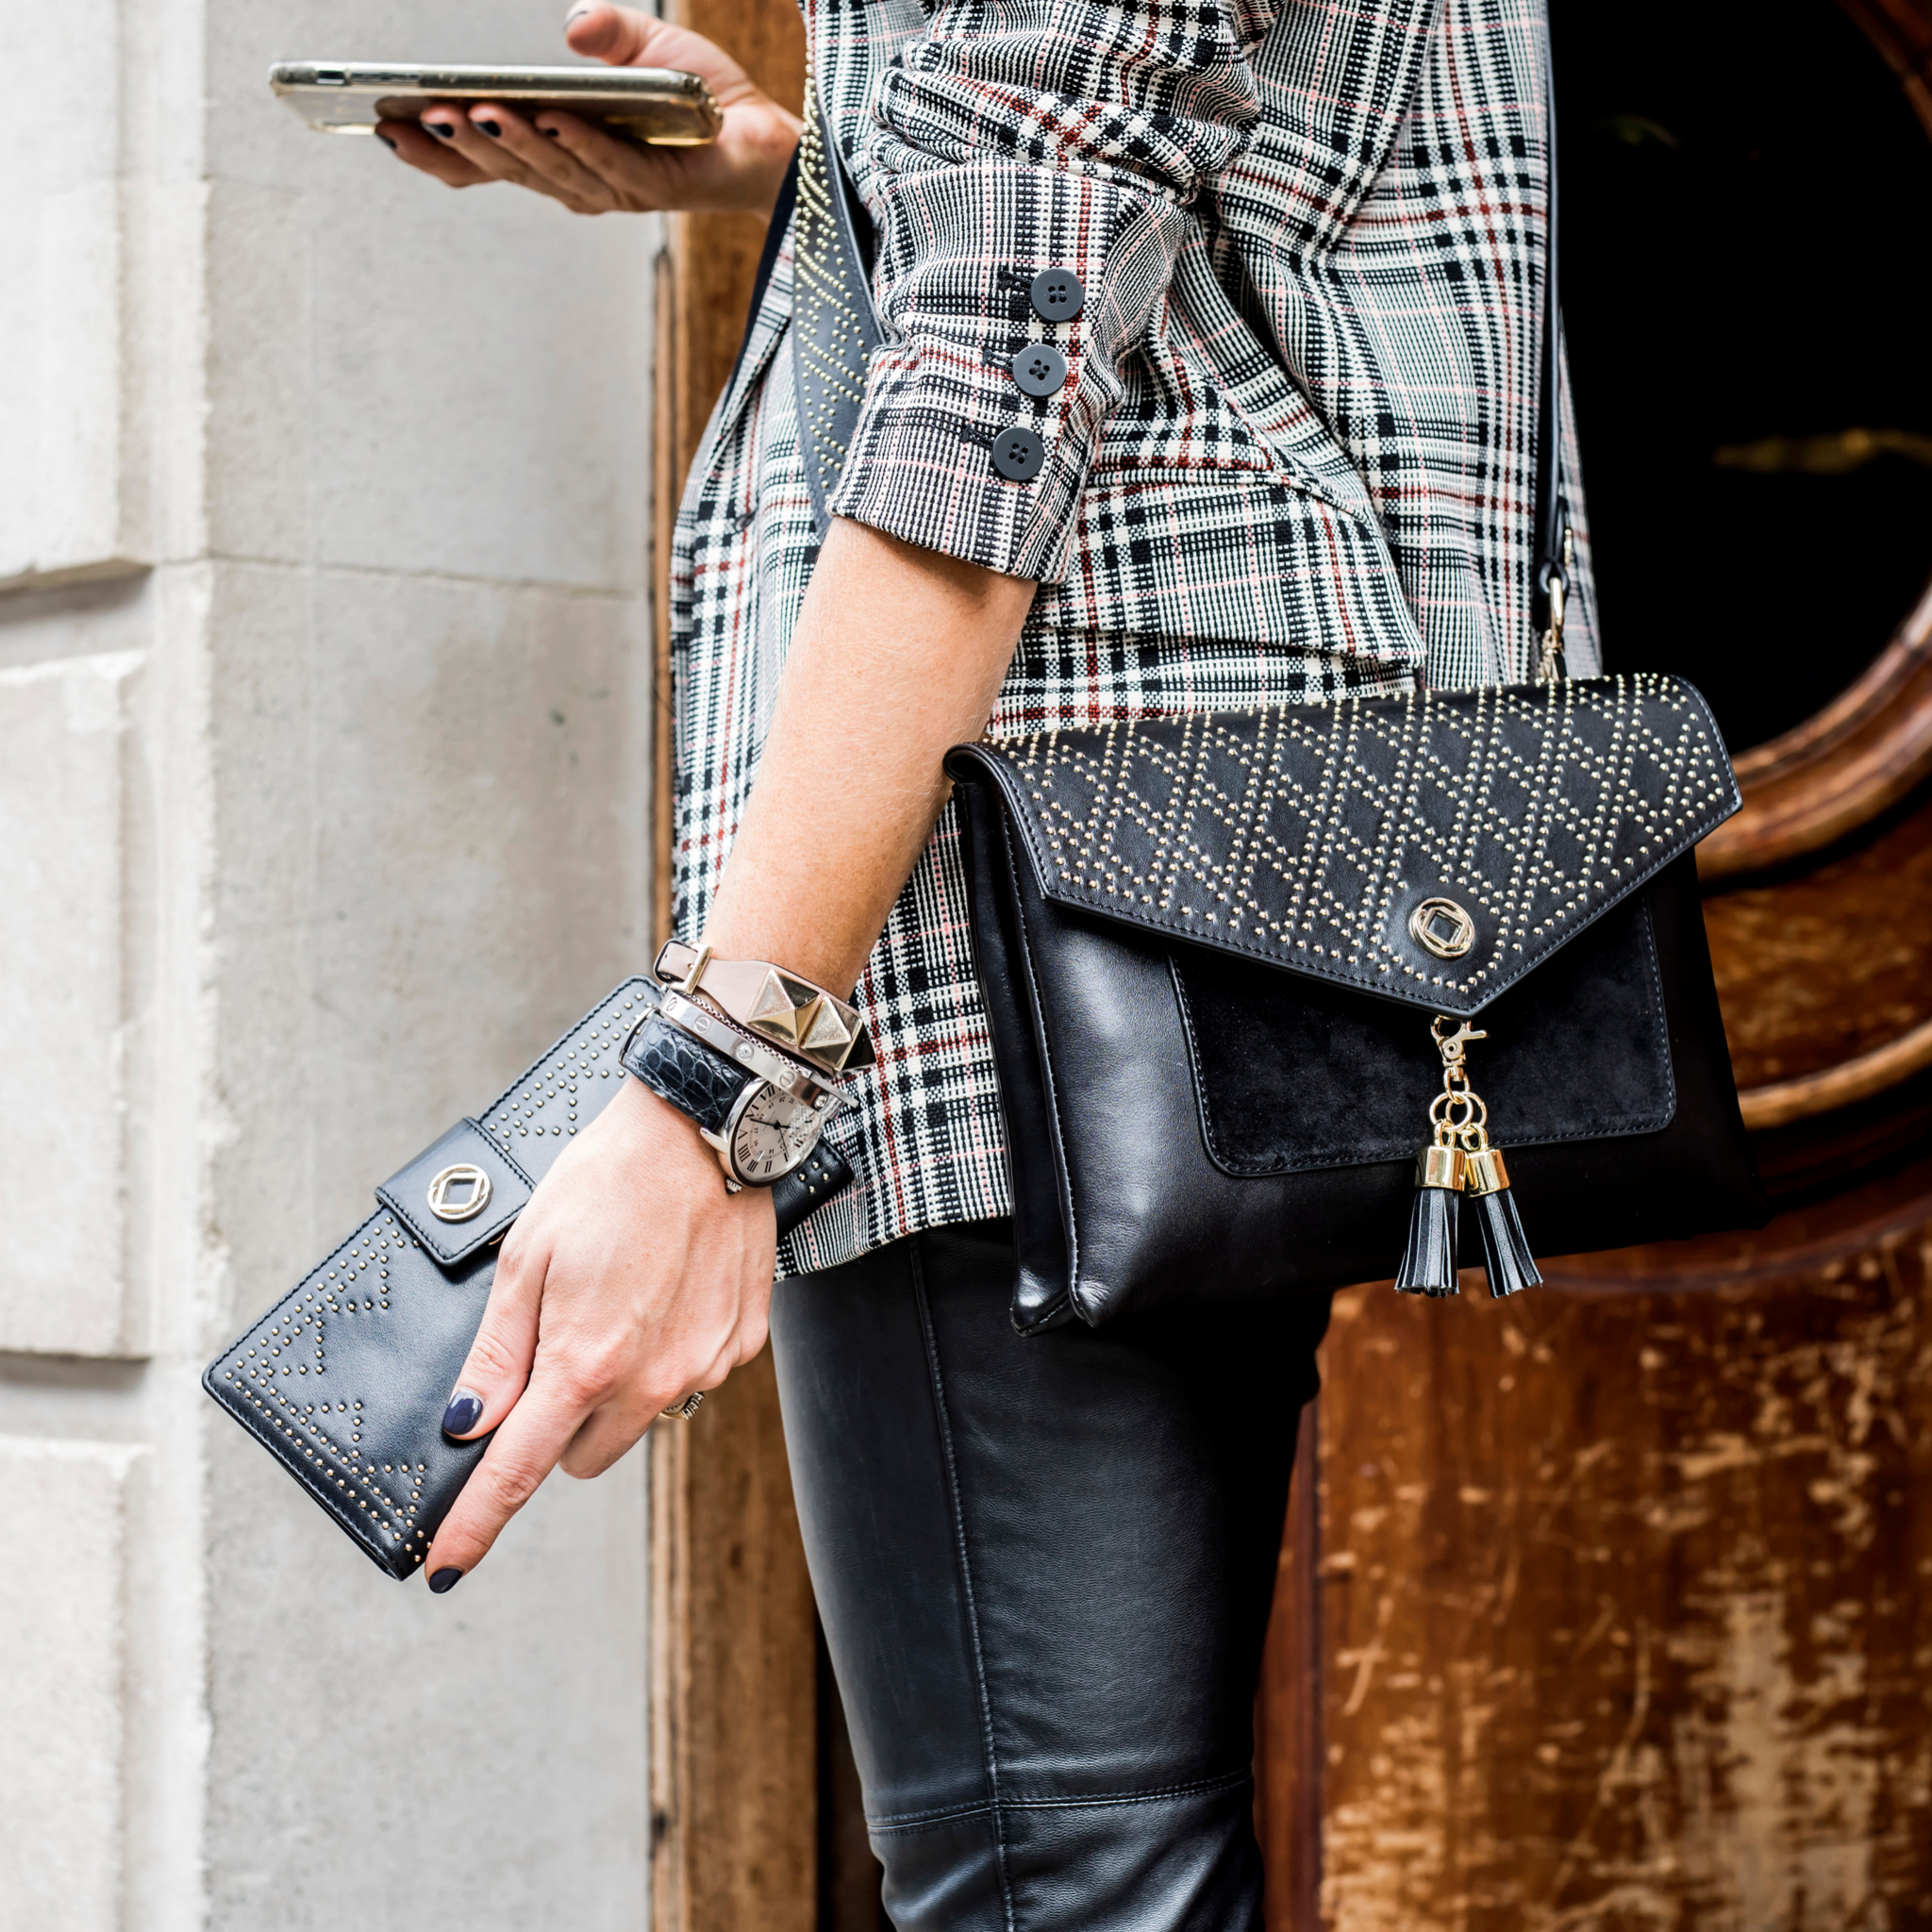 Harry studded leather purse with a cross body strap. Image shows a lady wearing the Harry studded bag with a cross body strap while holding a studded Tilly purse that fits perfectly in your Harry handbag.